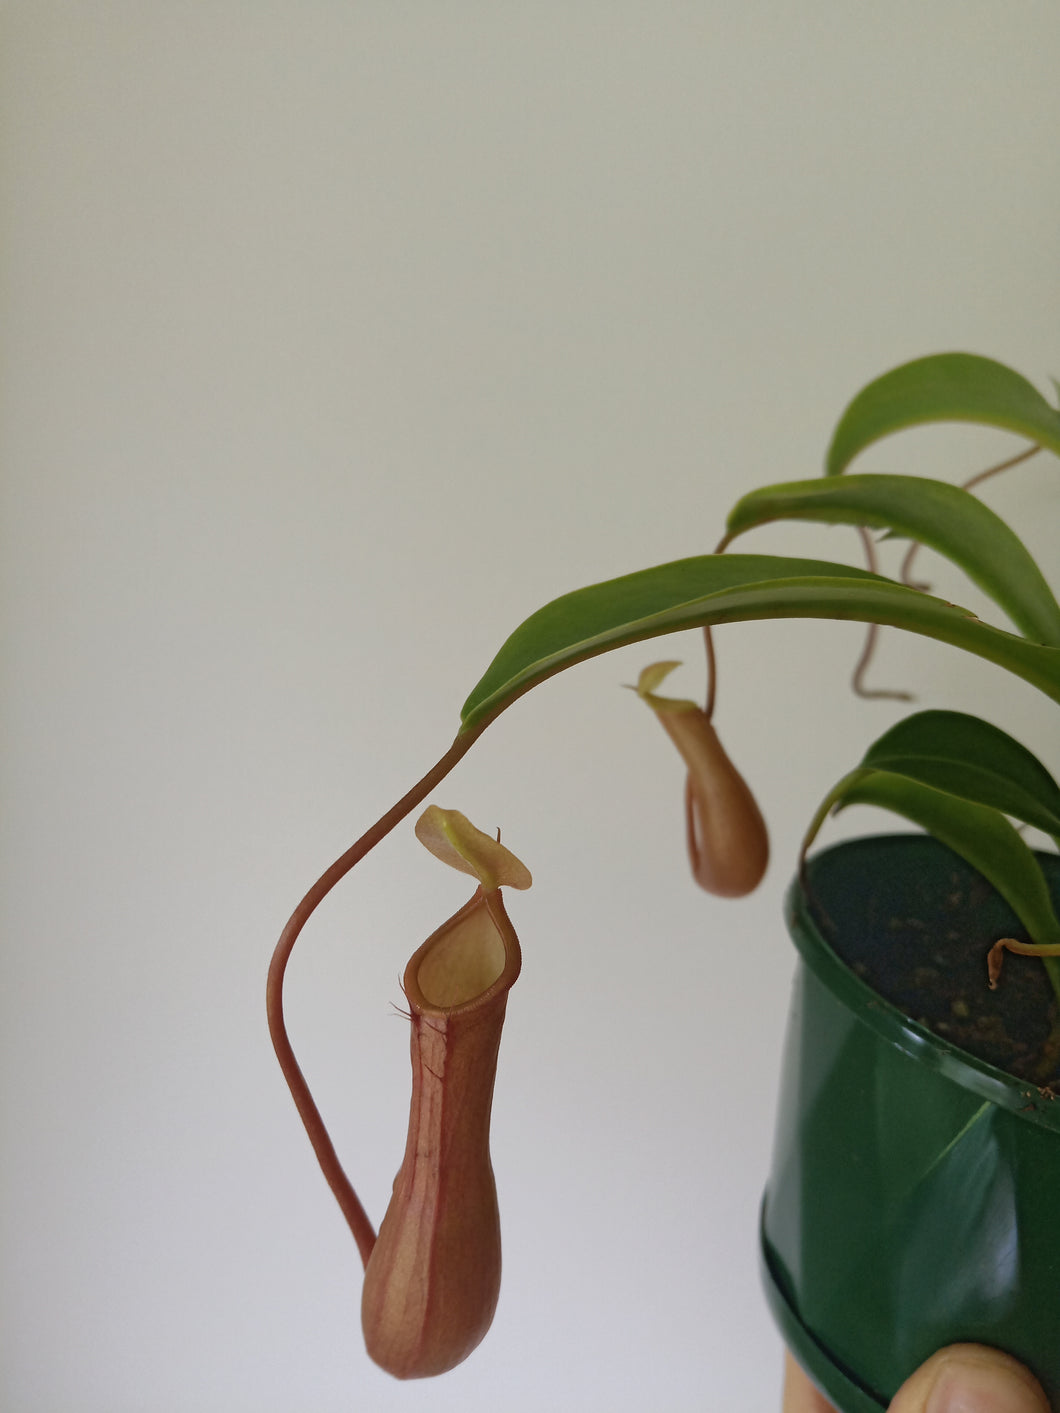 Nepenthes sp. - Pitcher Plant